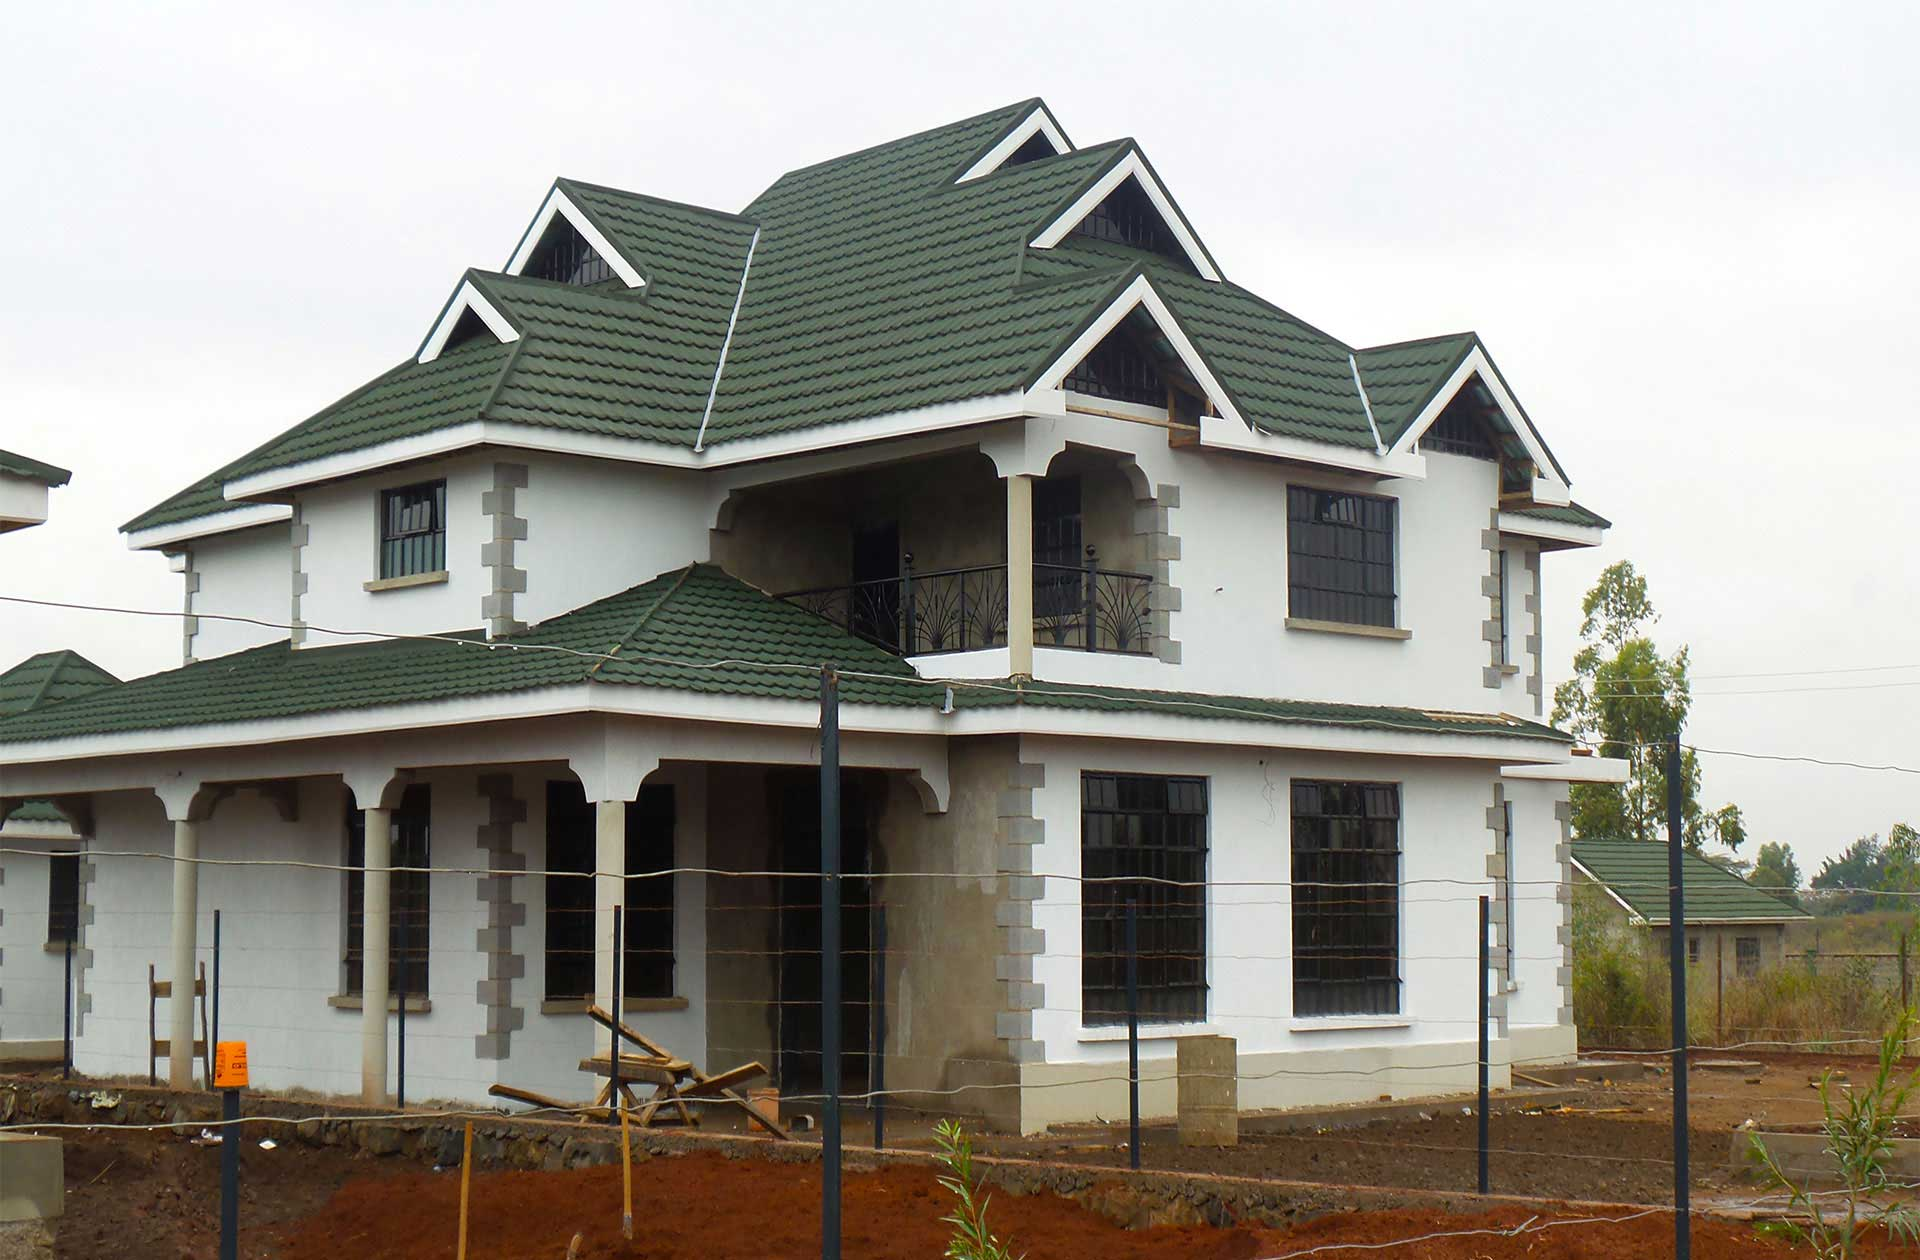 Roofing-tile-kenya-Aboutt-us2